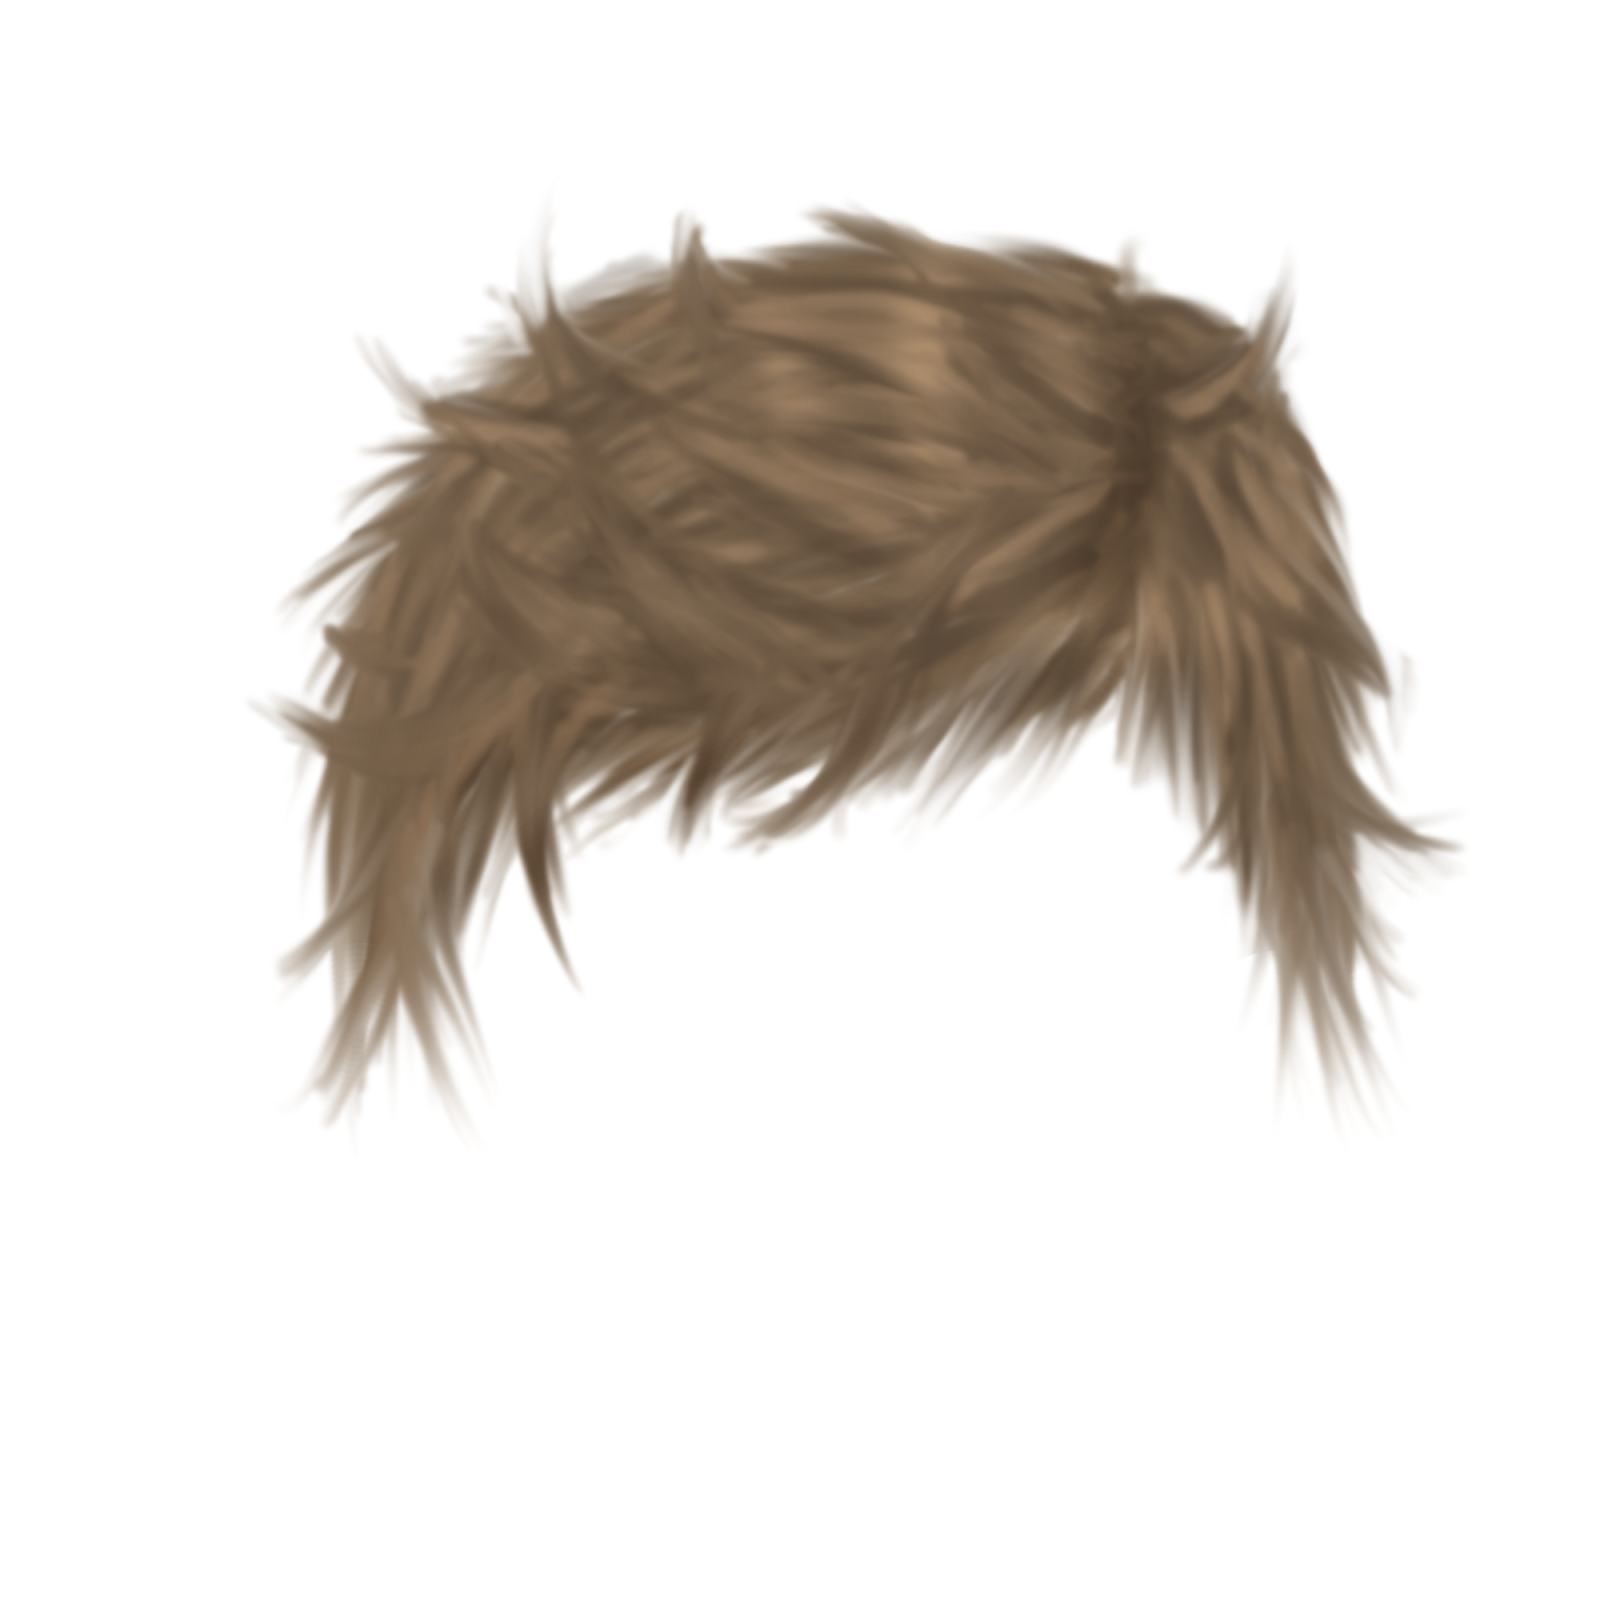 Boy Hair Png Stock Follow And Share Pz Ankitedit Tk